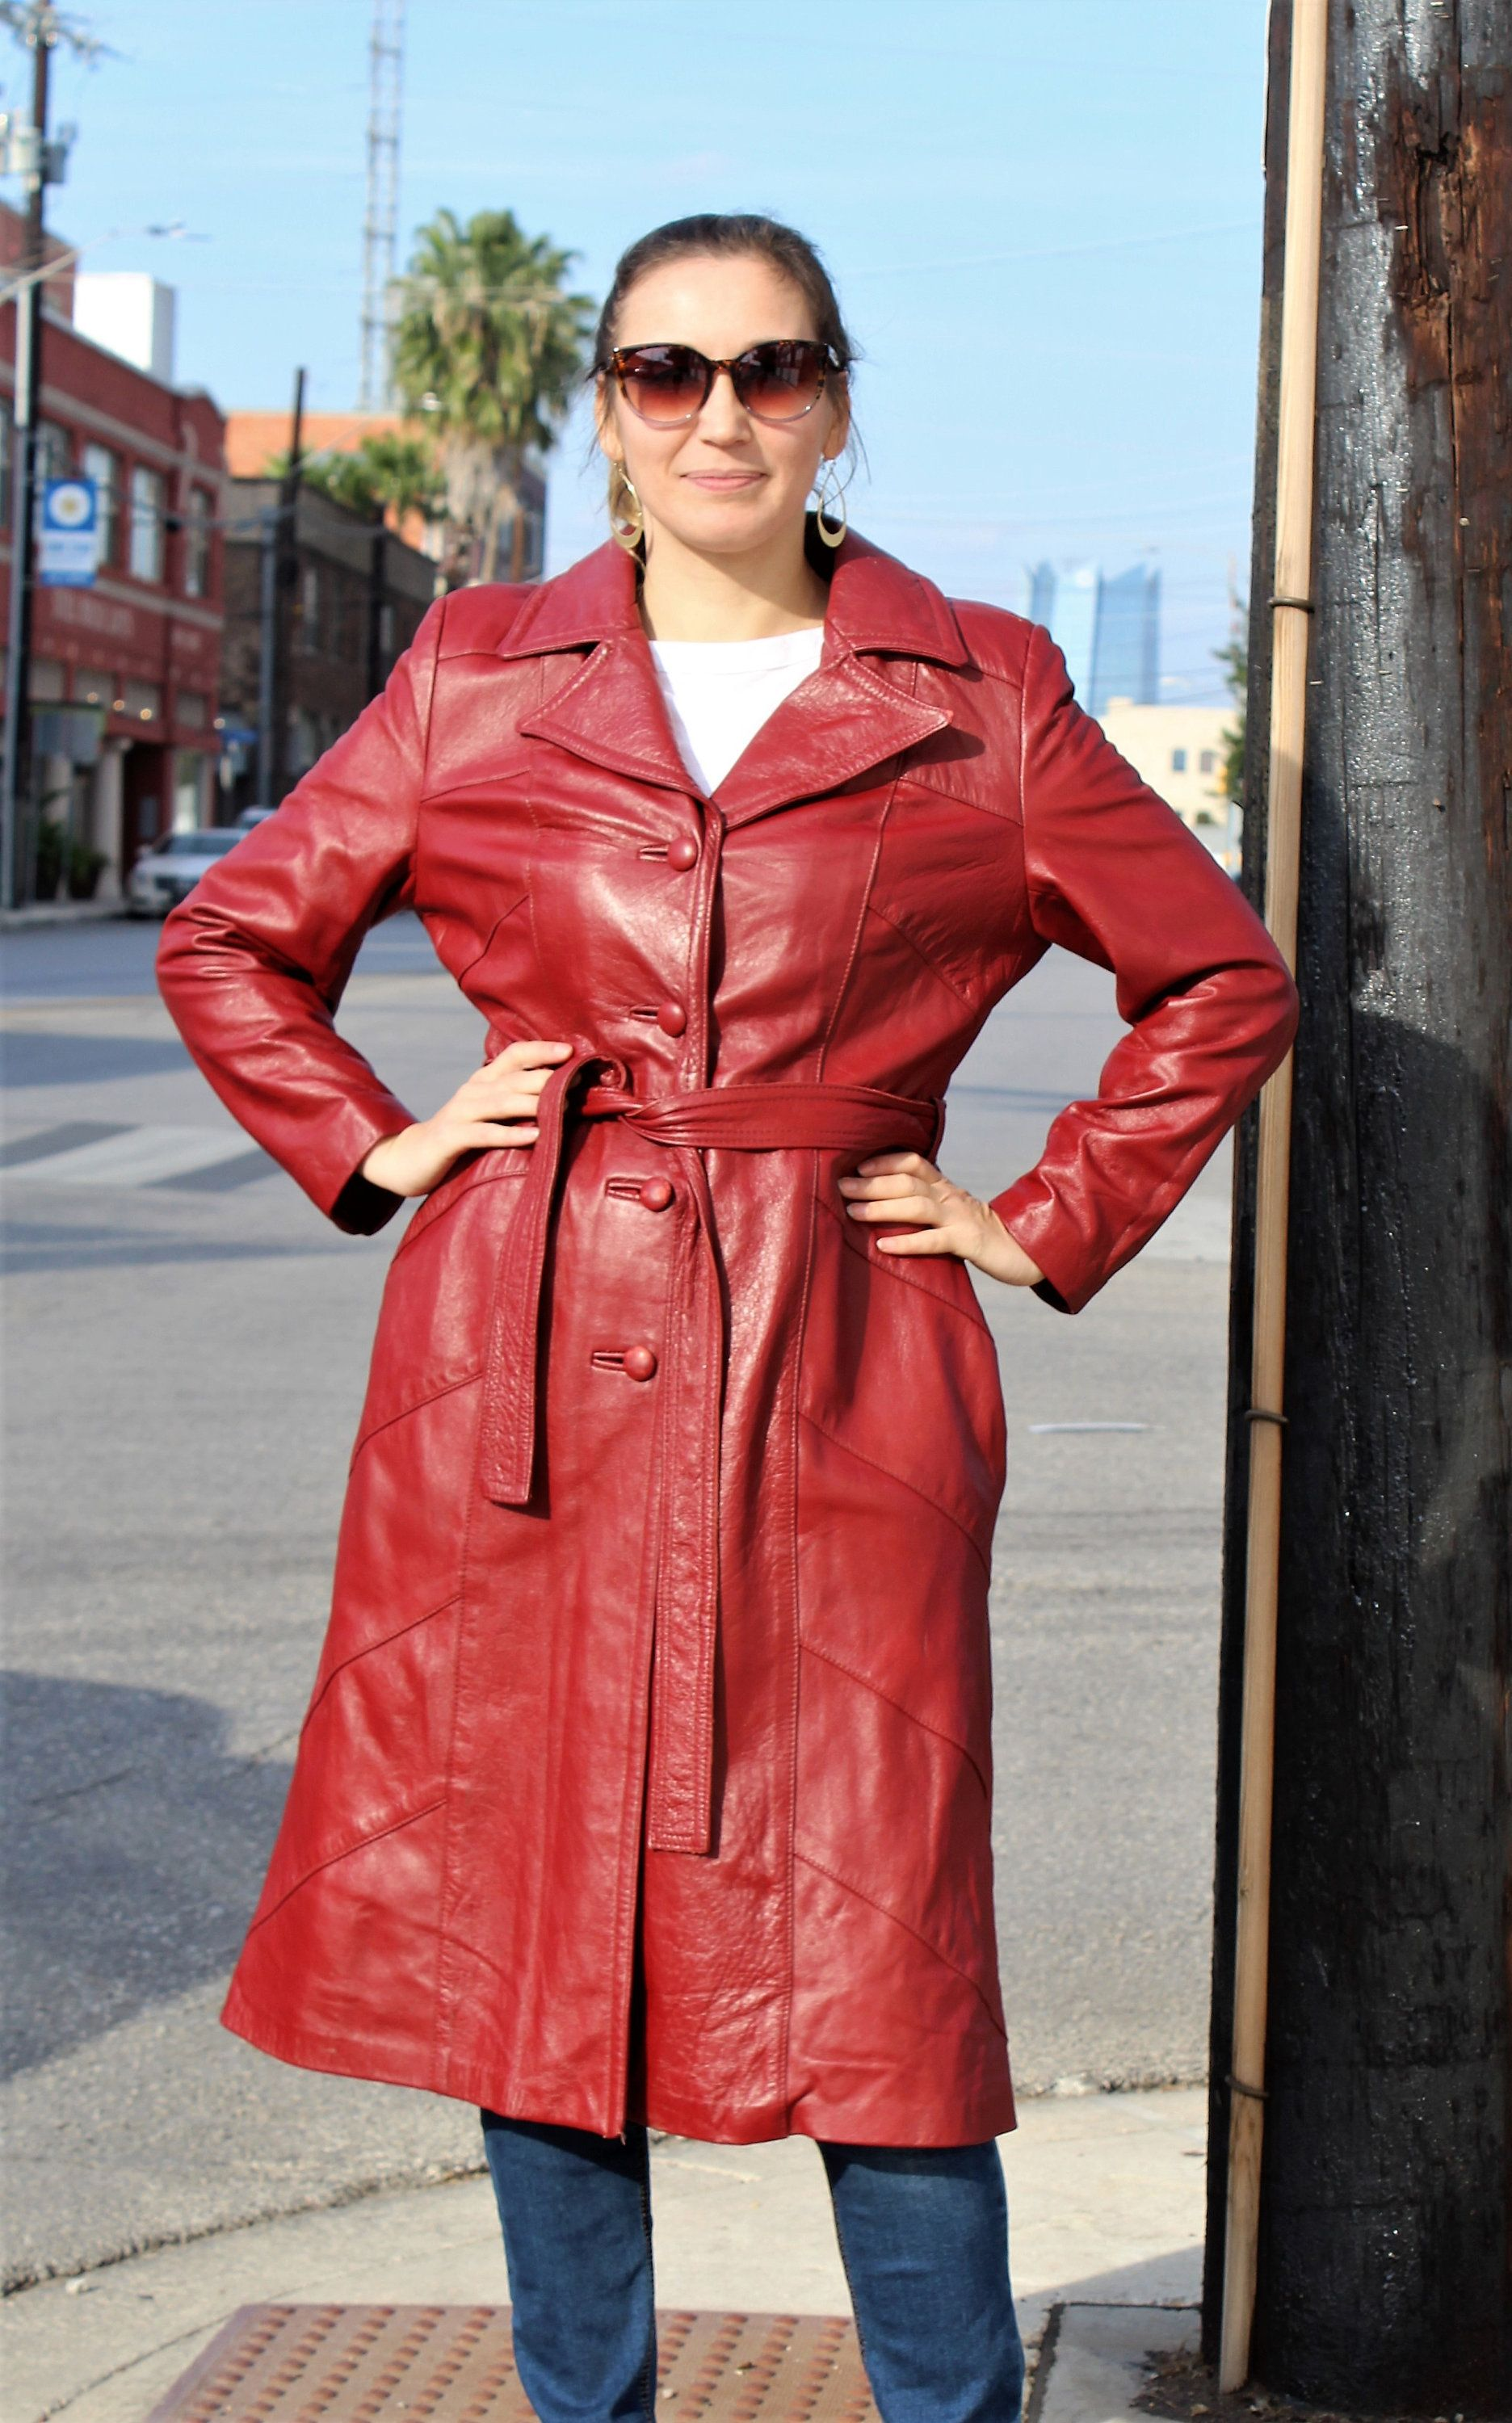 Midi Coat Women Coat With Pockets, Red Leather Coat